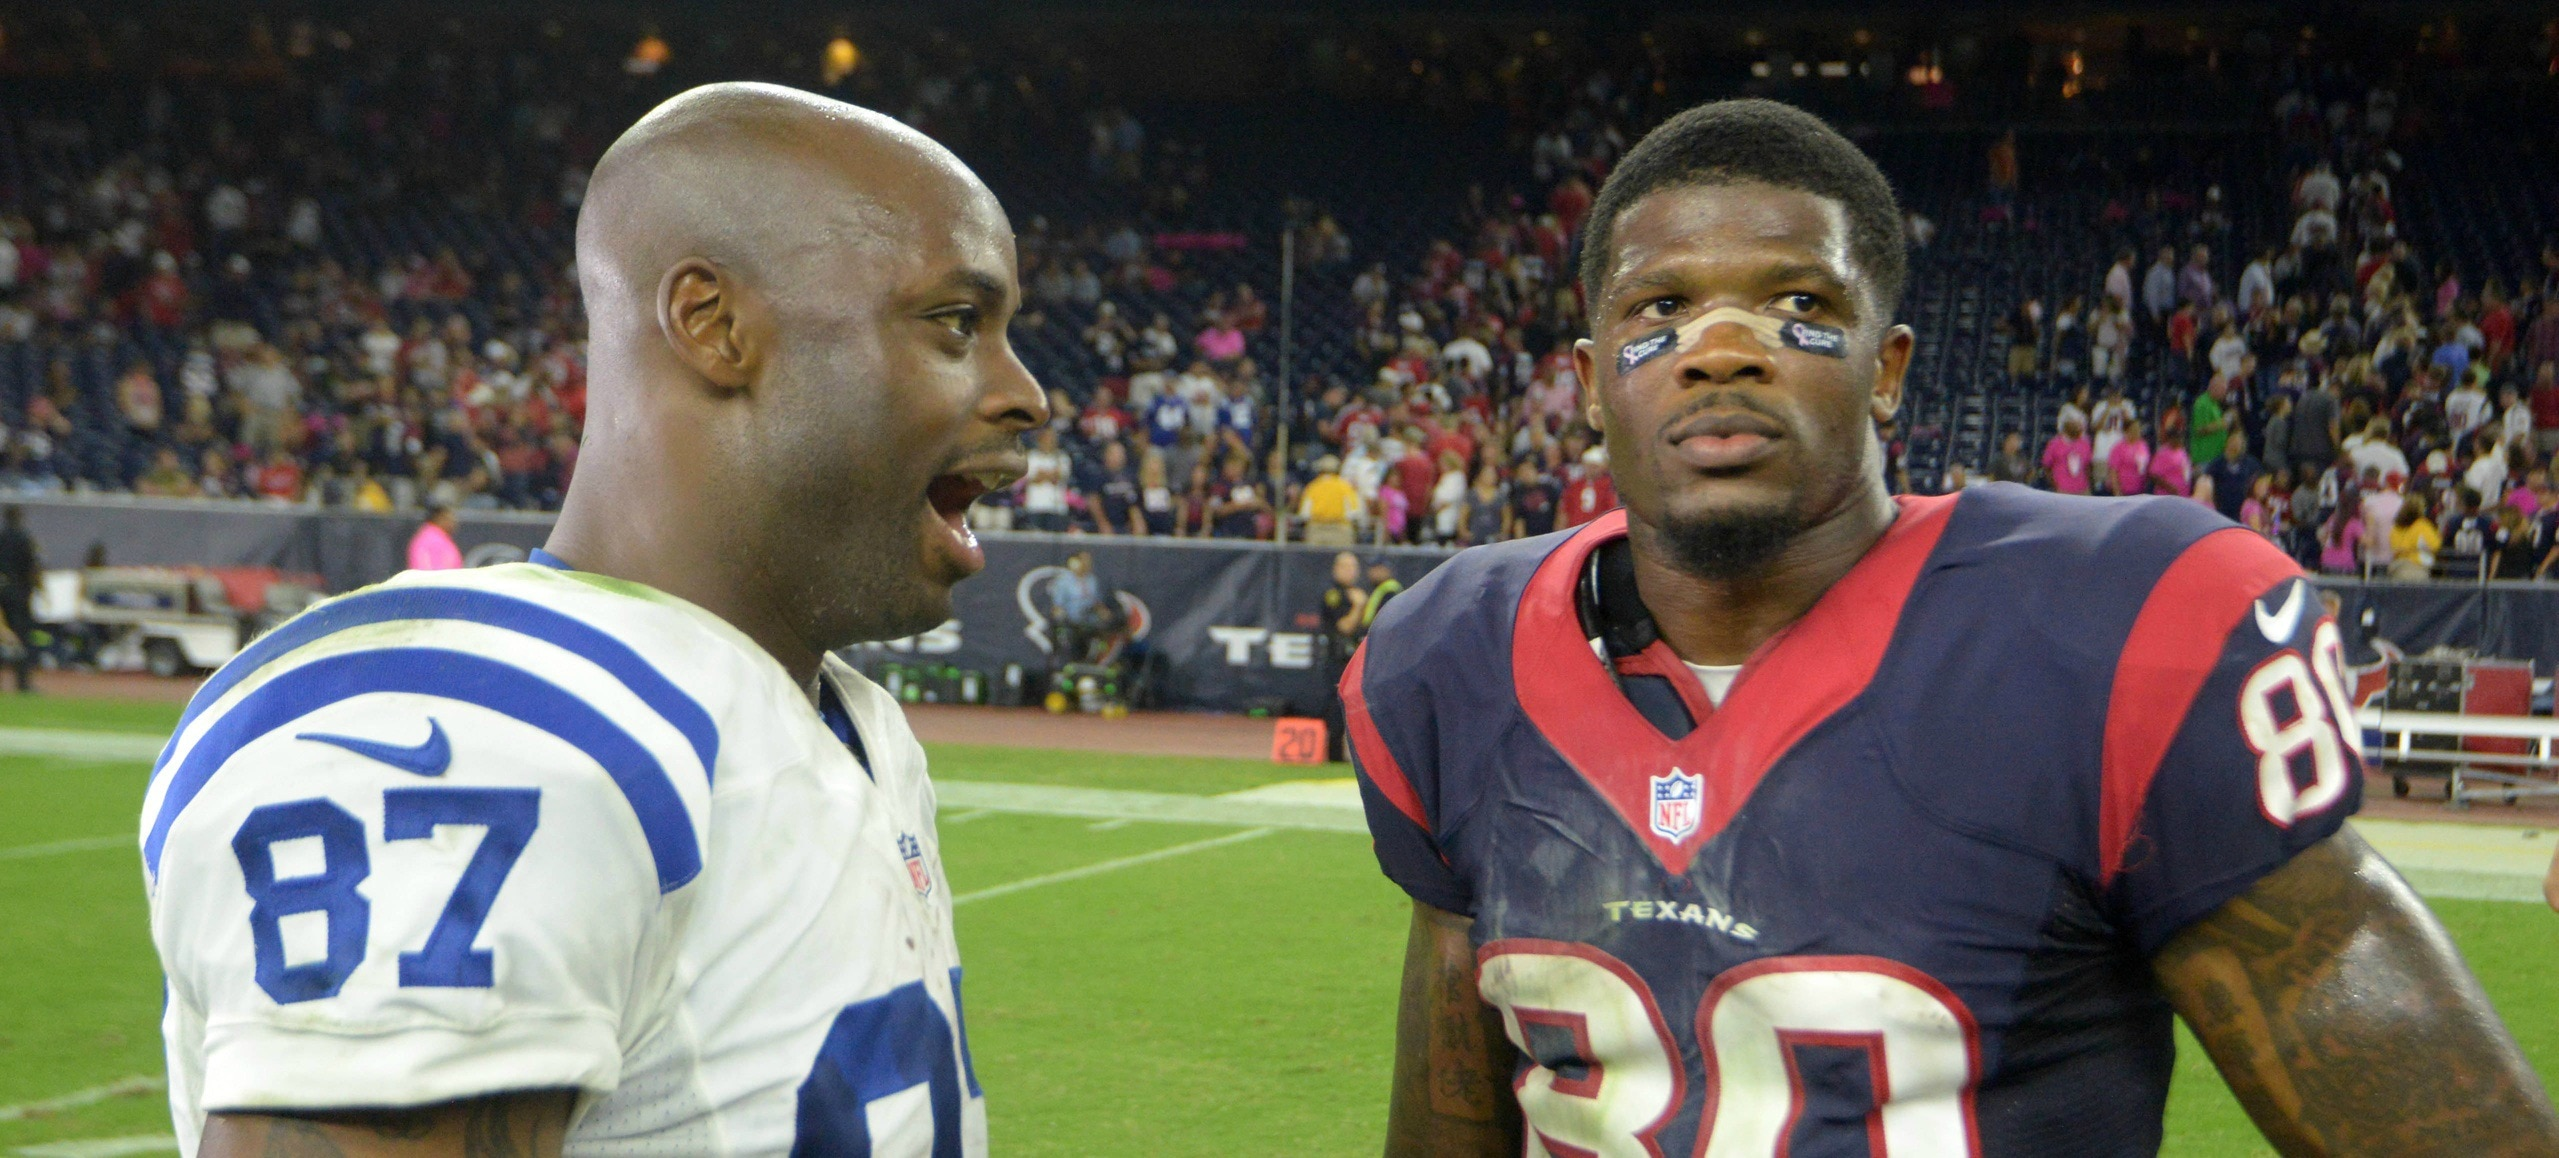 Andre Johnson Claims to Move to Indianapolis Was not About Revenge